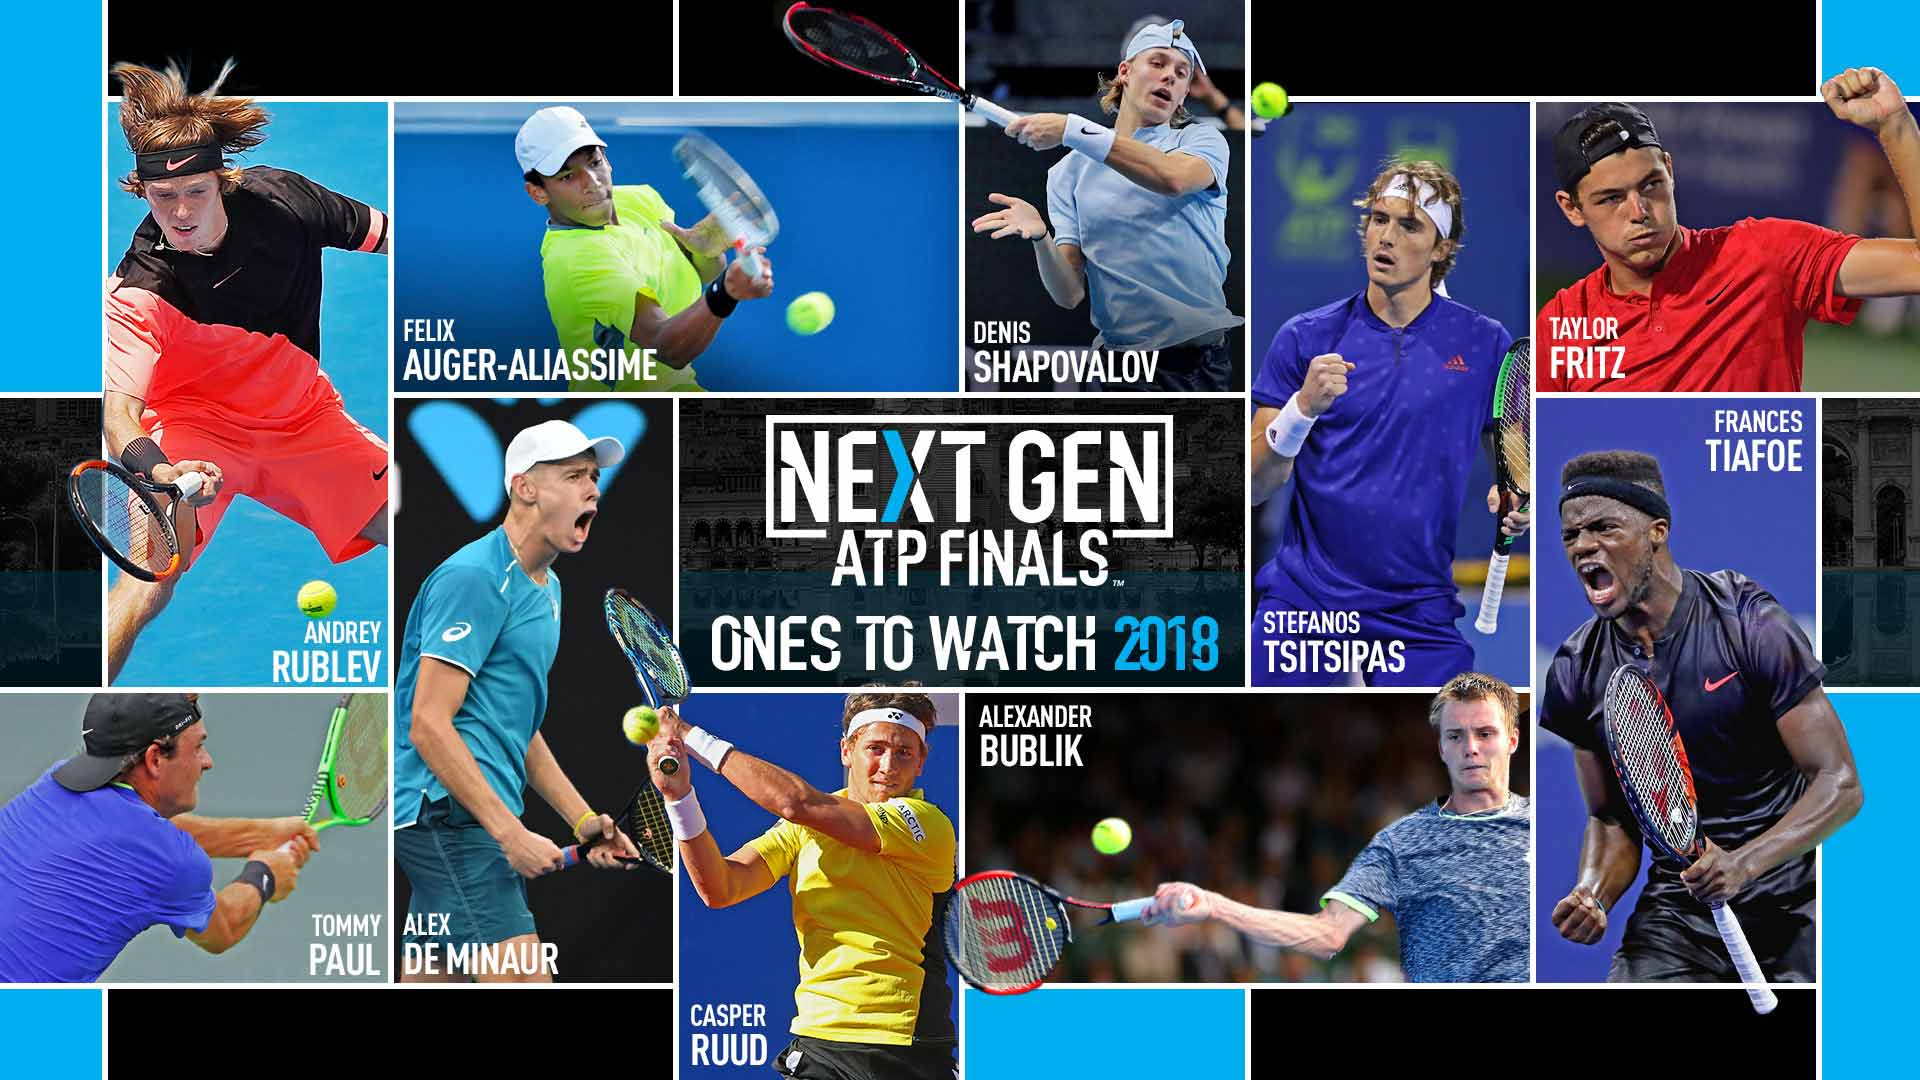 NextGenATP To Watch